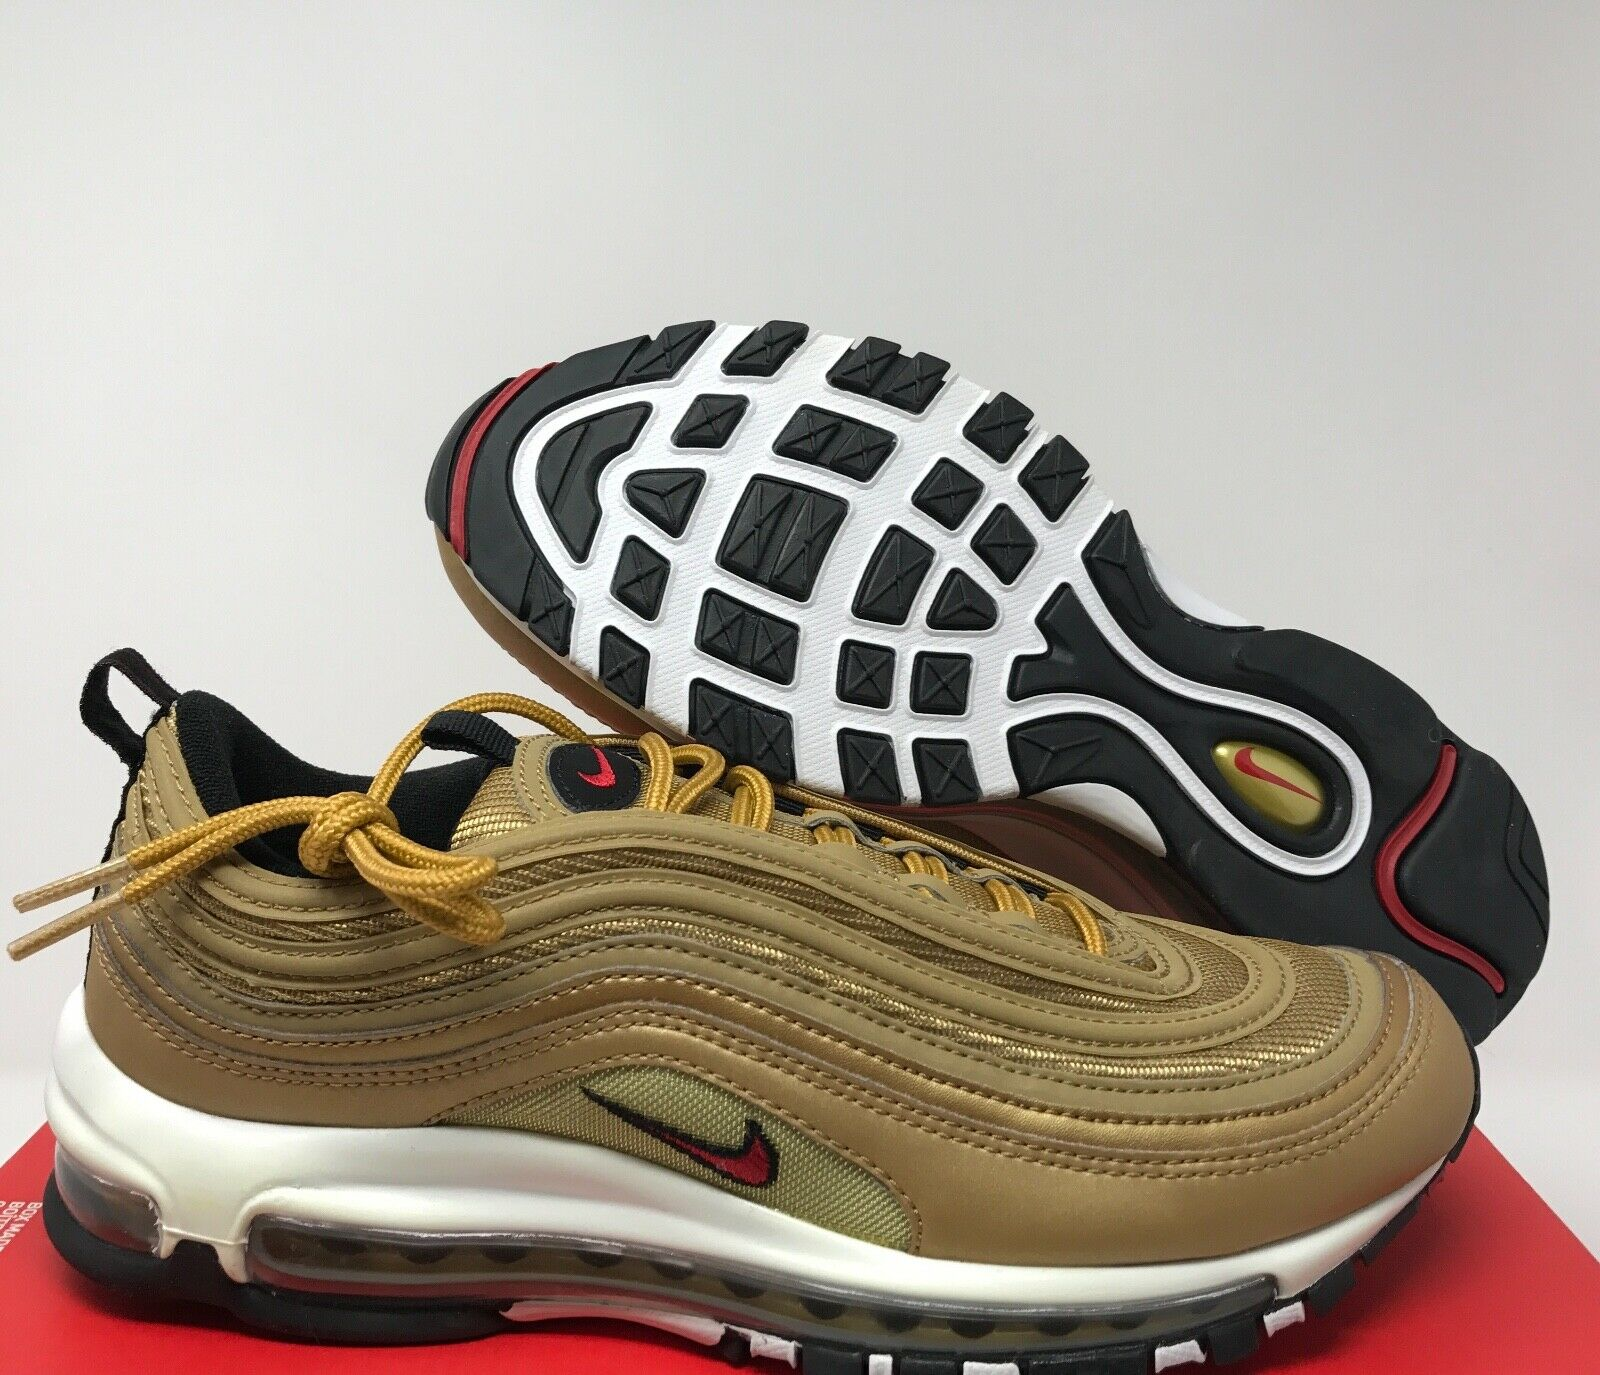 Nike Air Max 97 OG QS Am97 Metallic Gold Olympic 884421 700 Shoes Size 8